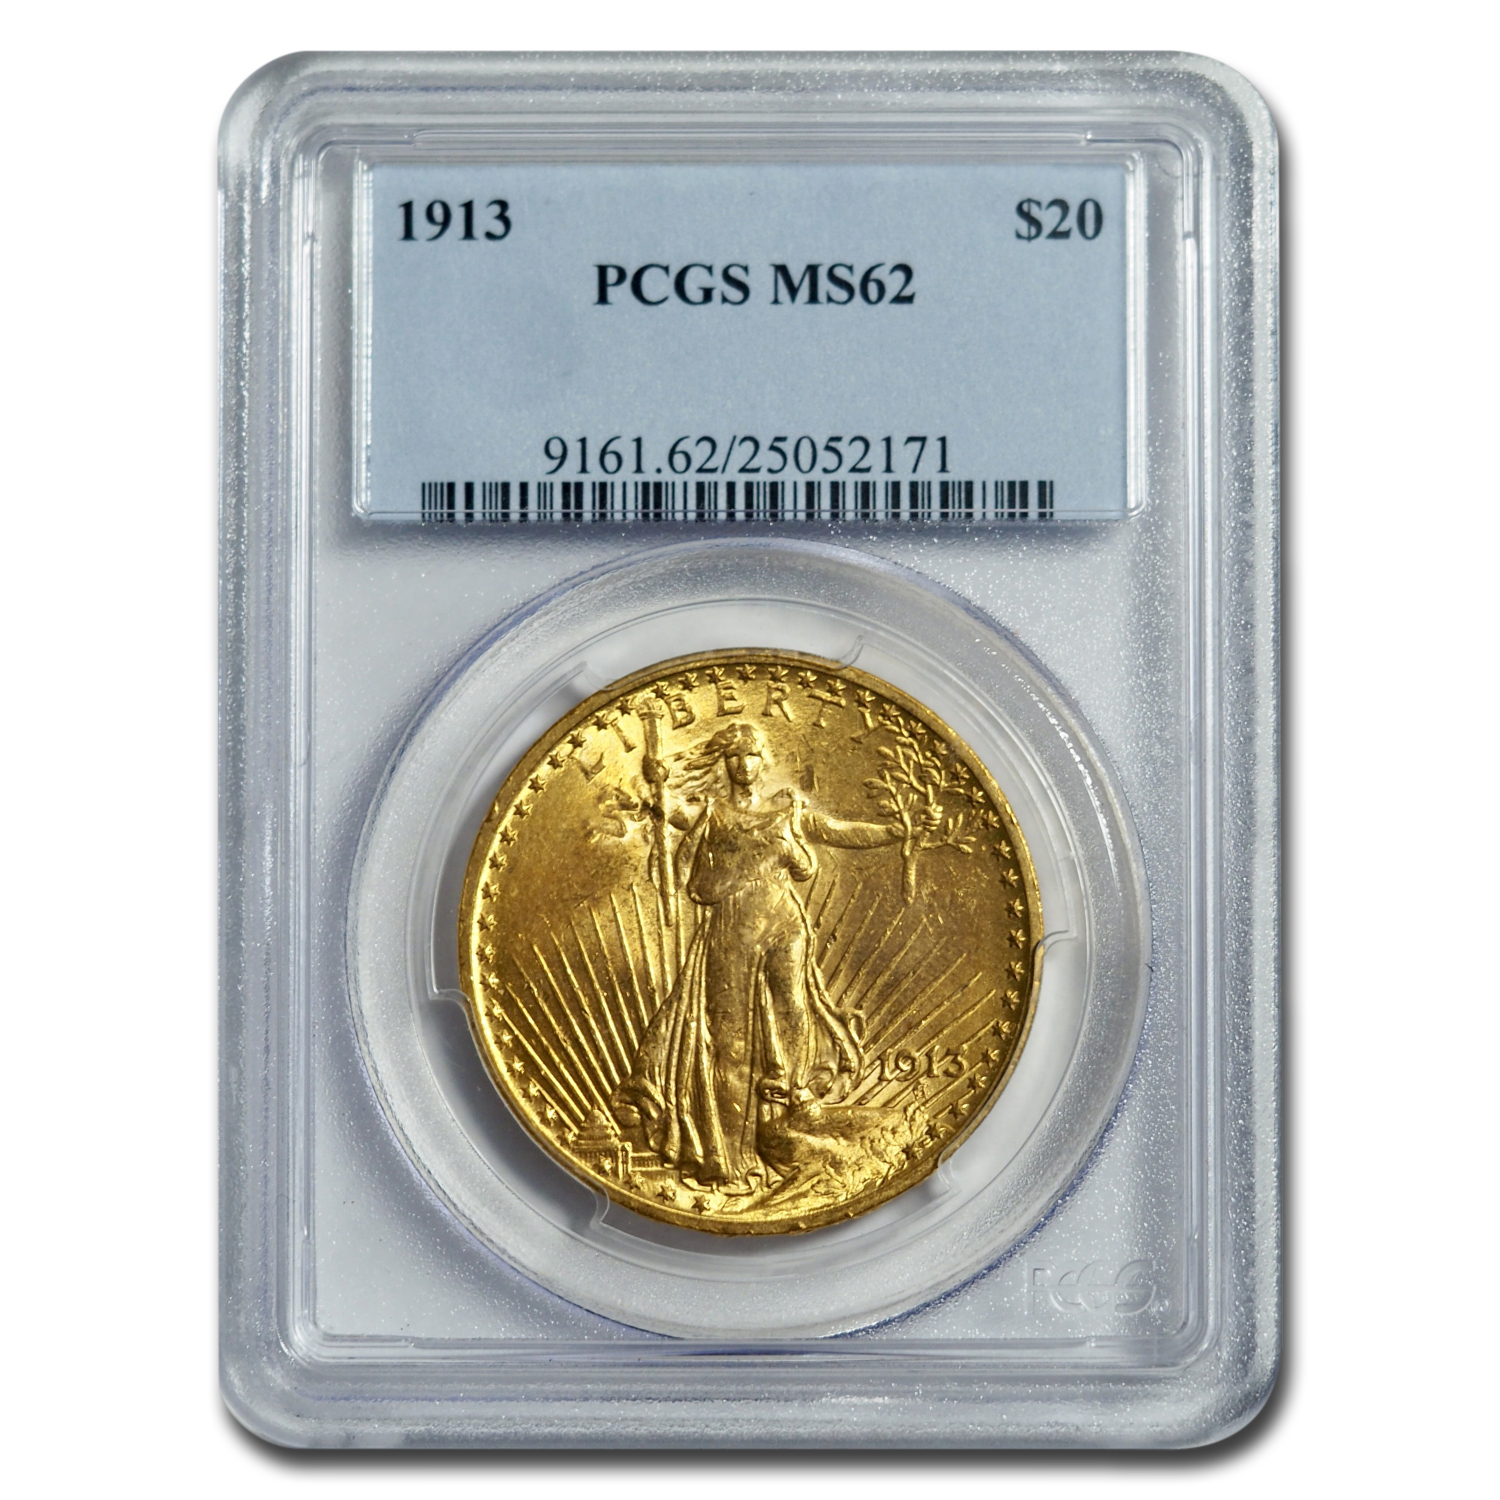 1913 $20 St. Gaudens Gold Double Eagle MS-62 PCGS